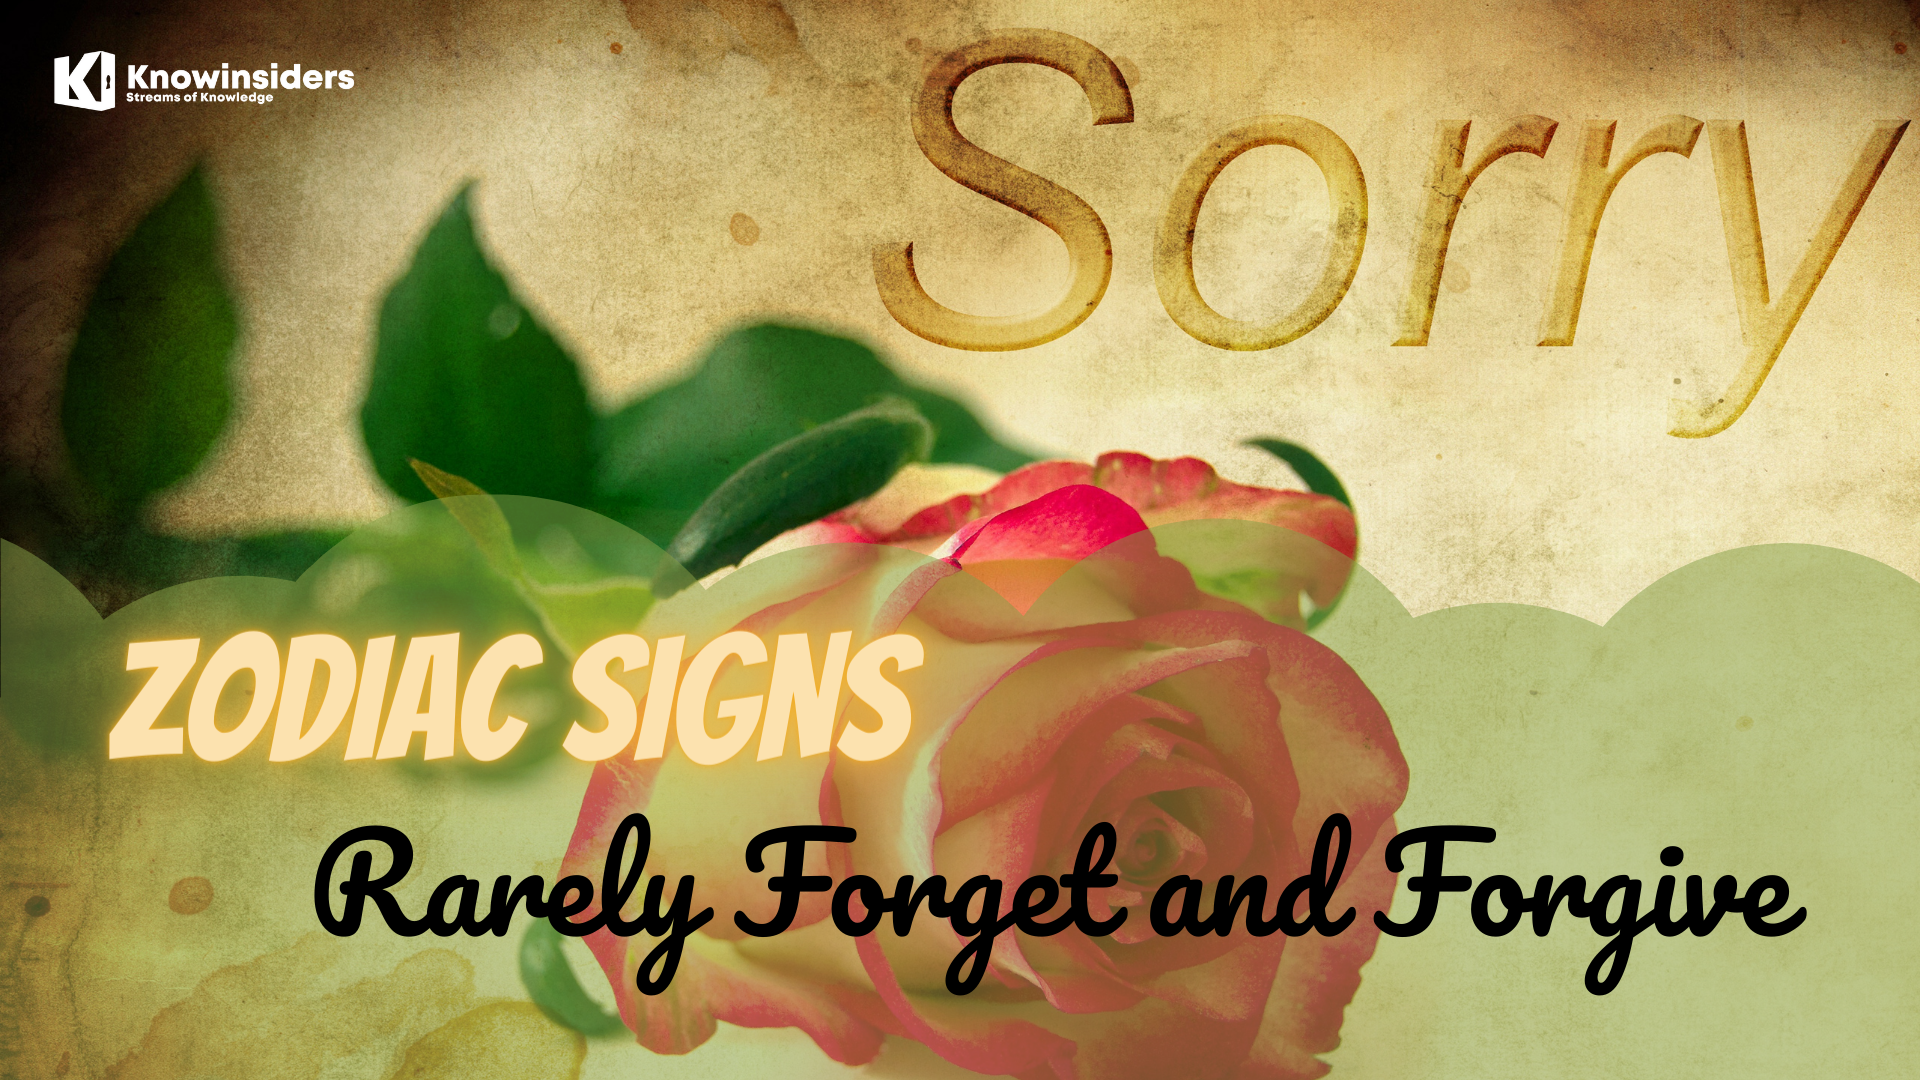 Top 5 Zodiac Signs Who Rarely Forget And Forgive According To Astrology